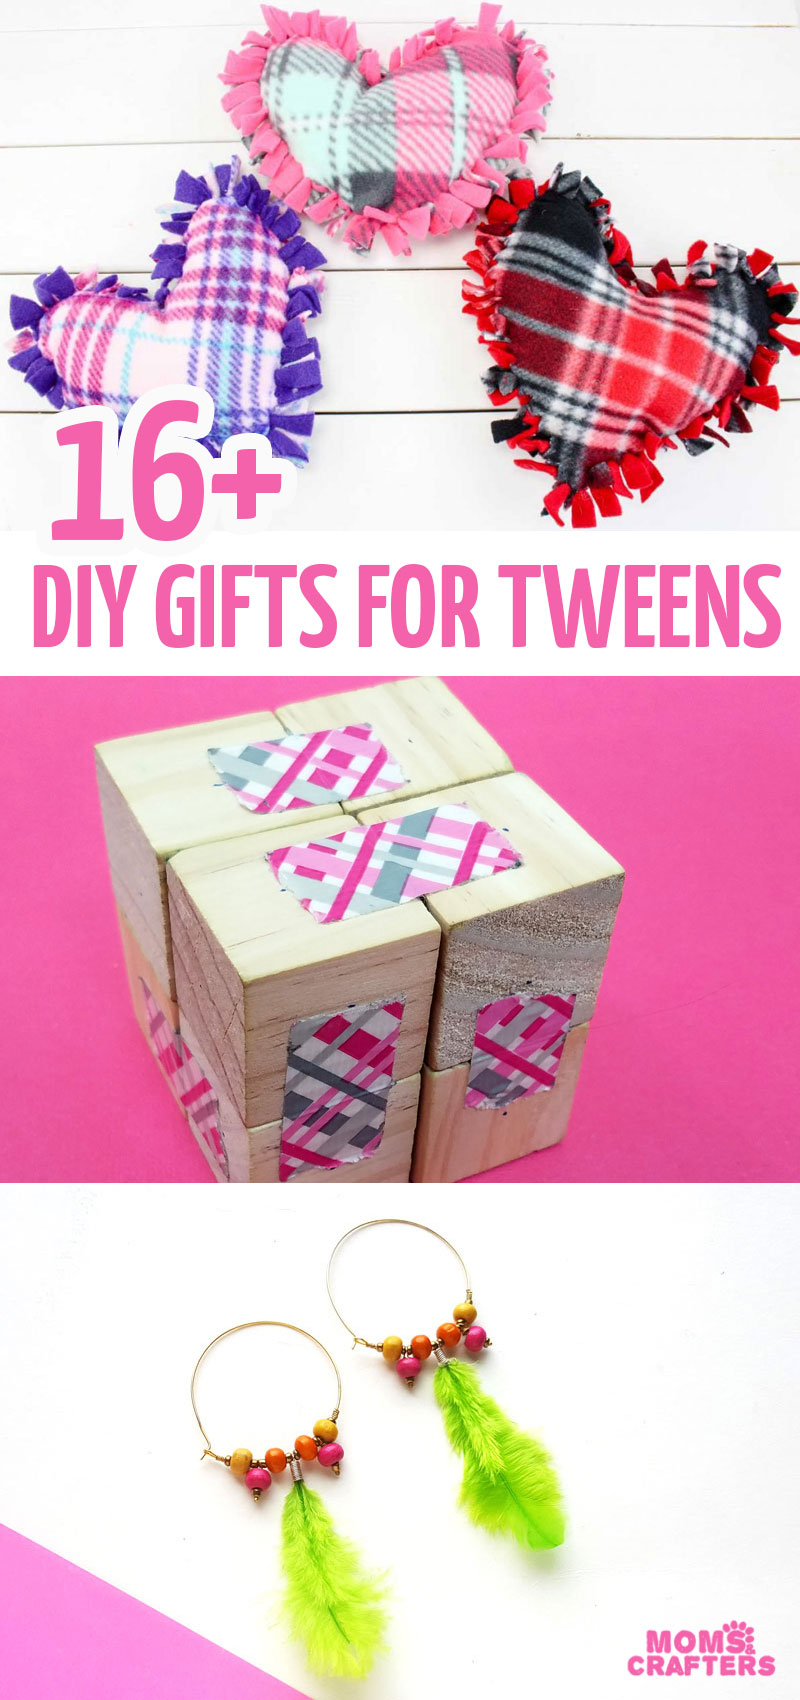 Diy Gifts For Tweens To Make For Other Tweens Moms And Crafters